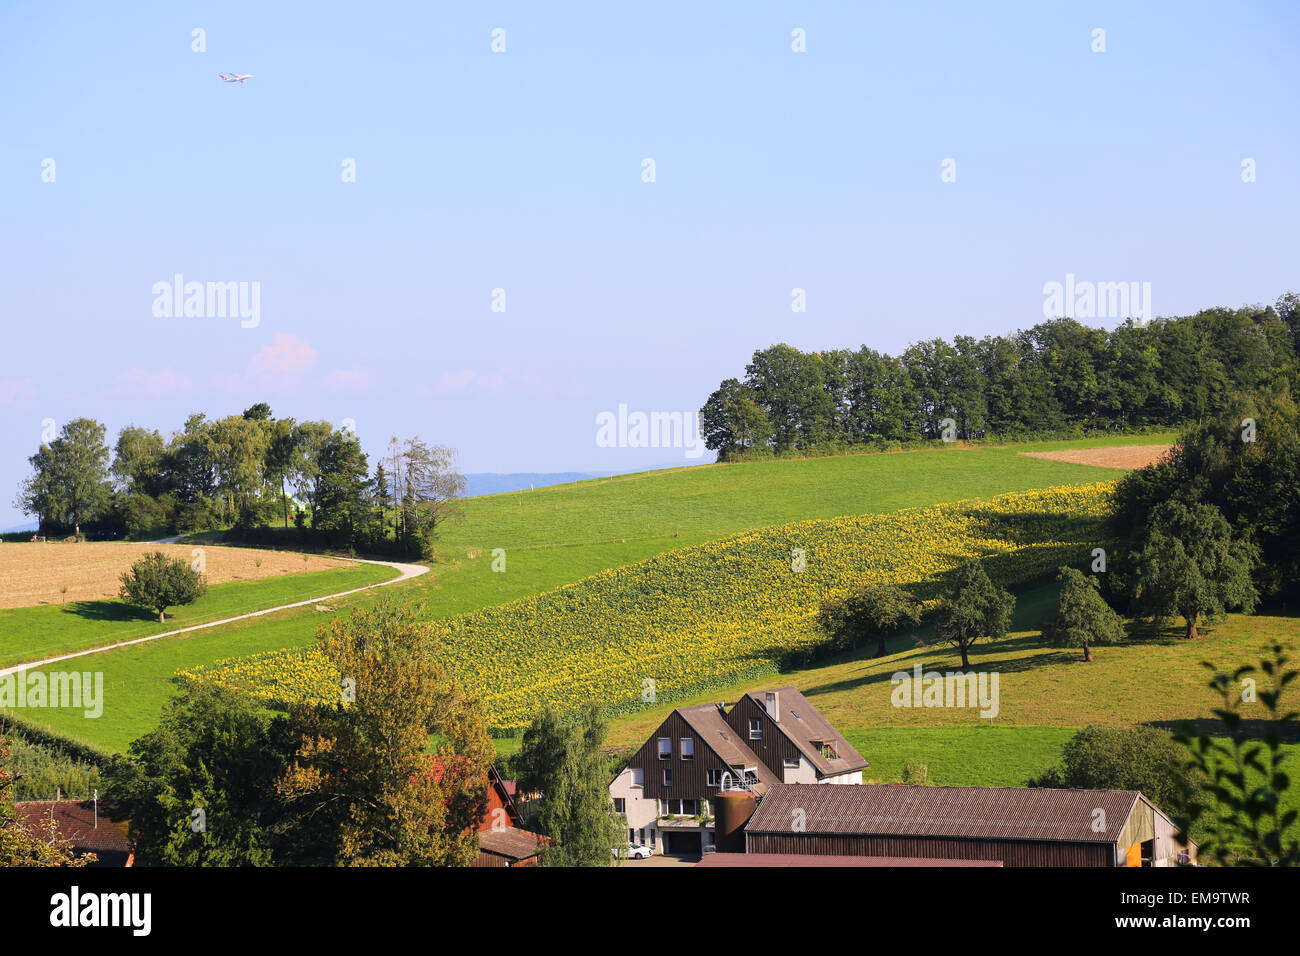 Green fields and trees in rural Switzerland Stock Photo